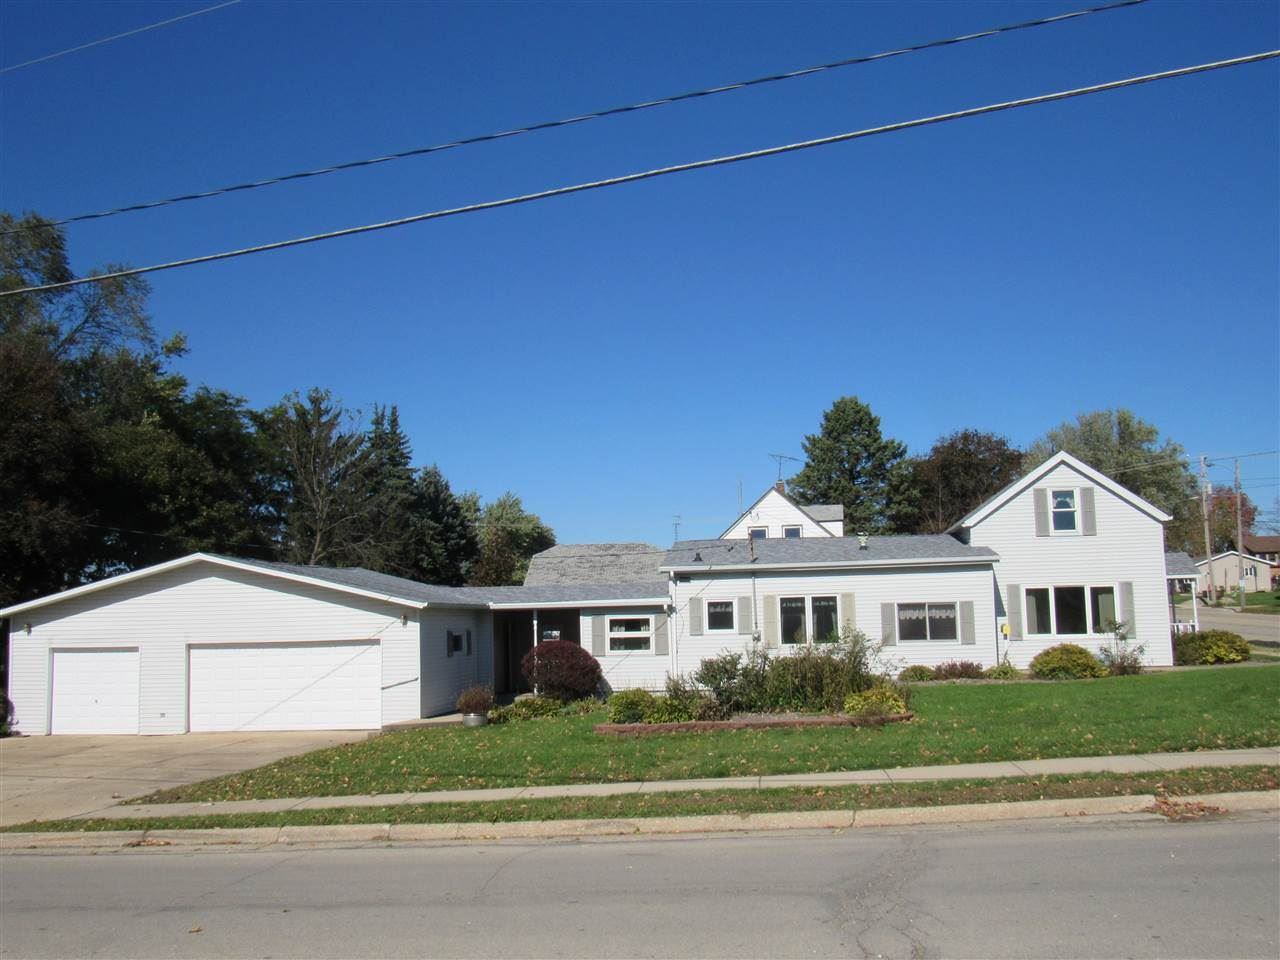 2019 11th Ave, Monroe, WI 53566 - #: 1872953